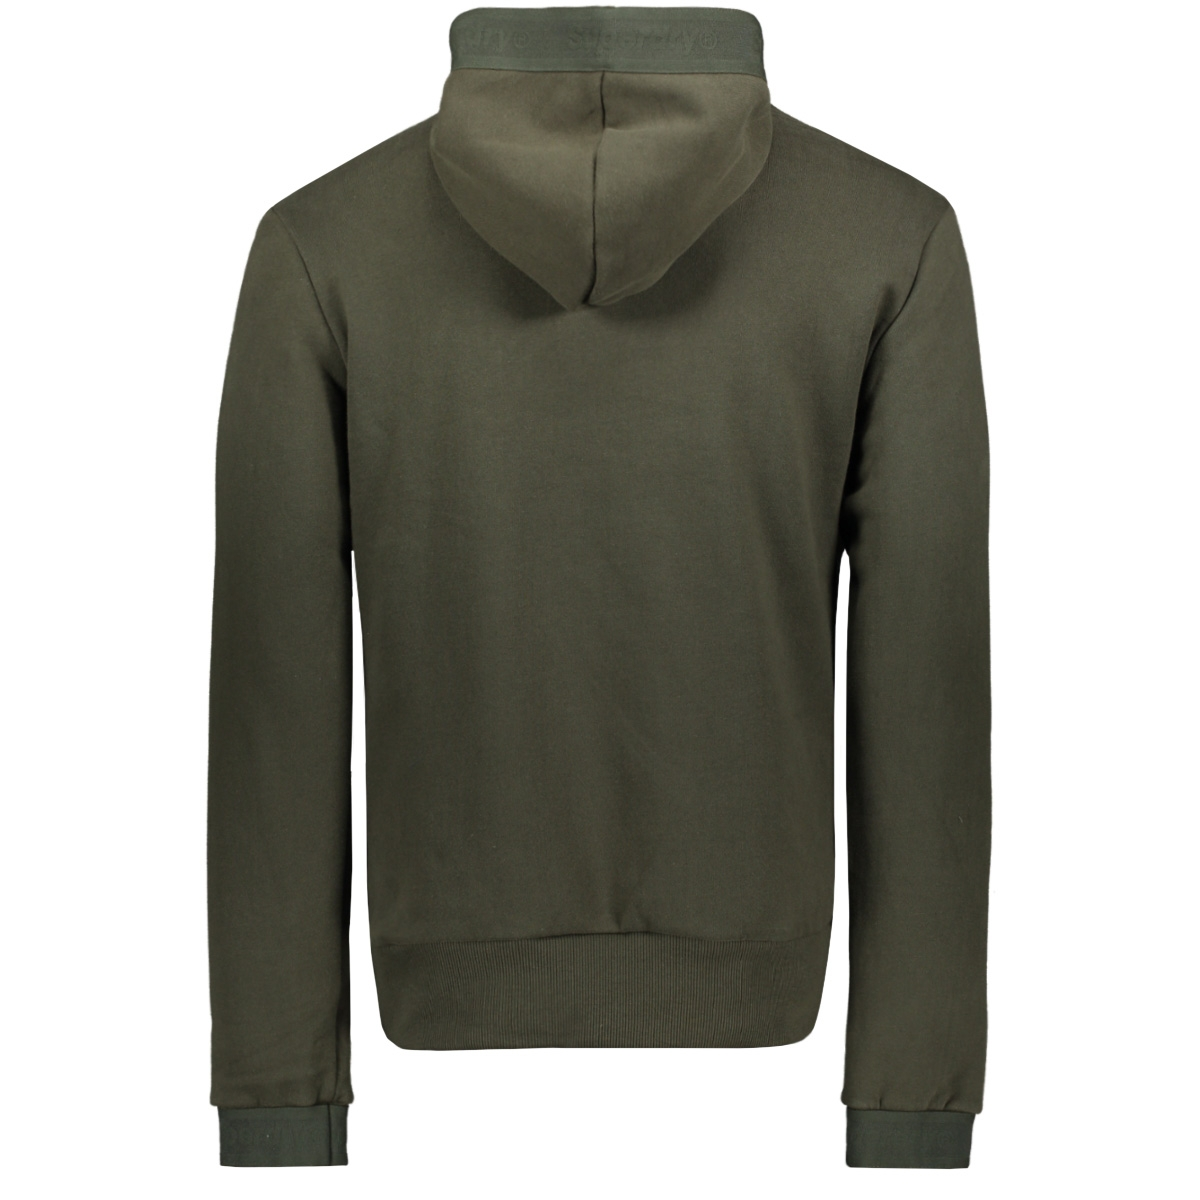 tonal tape hood m2000138a superdry sweater surplus goods olive